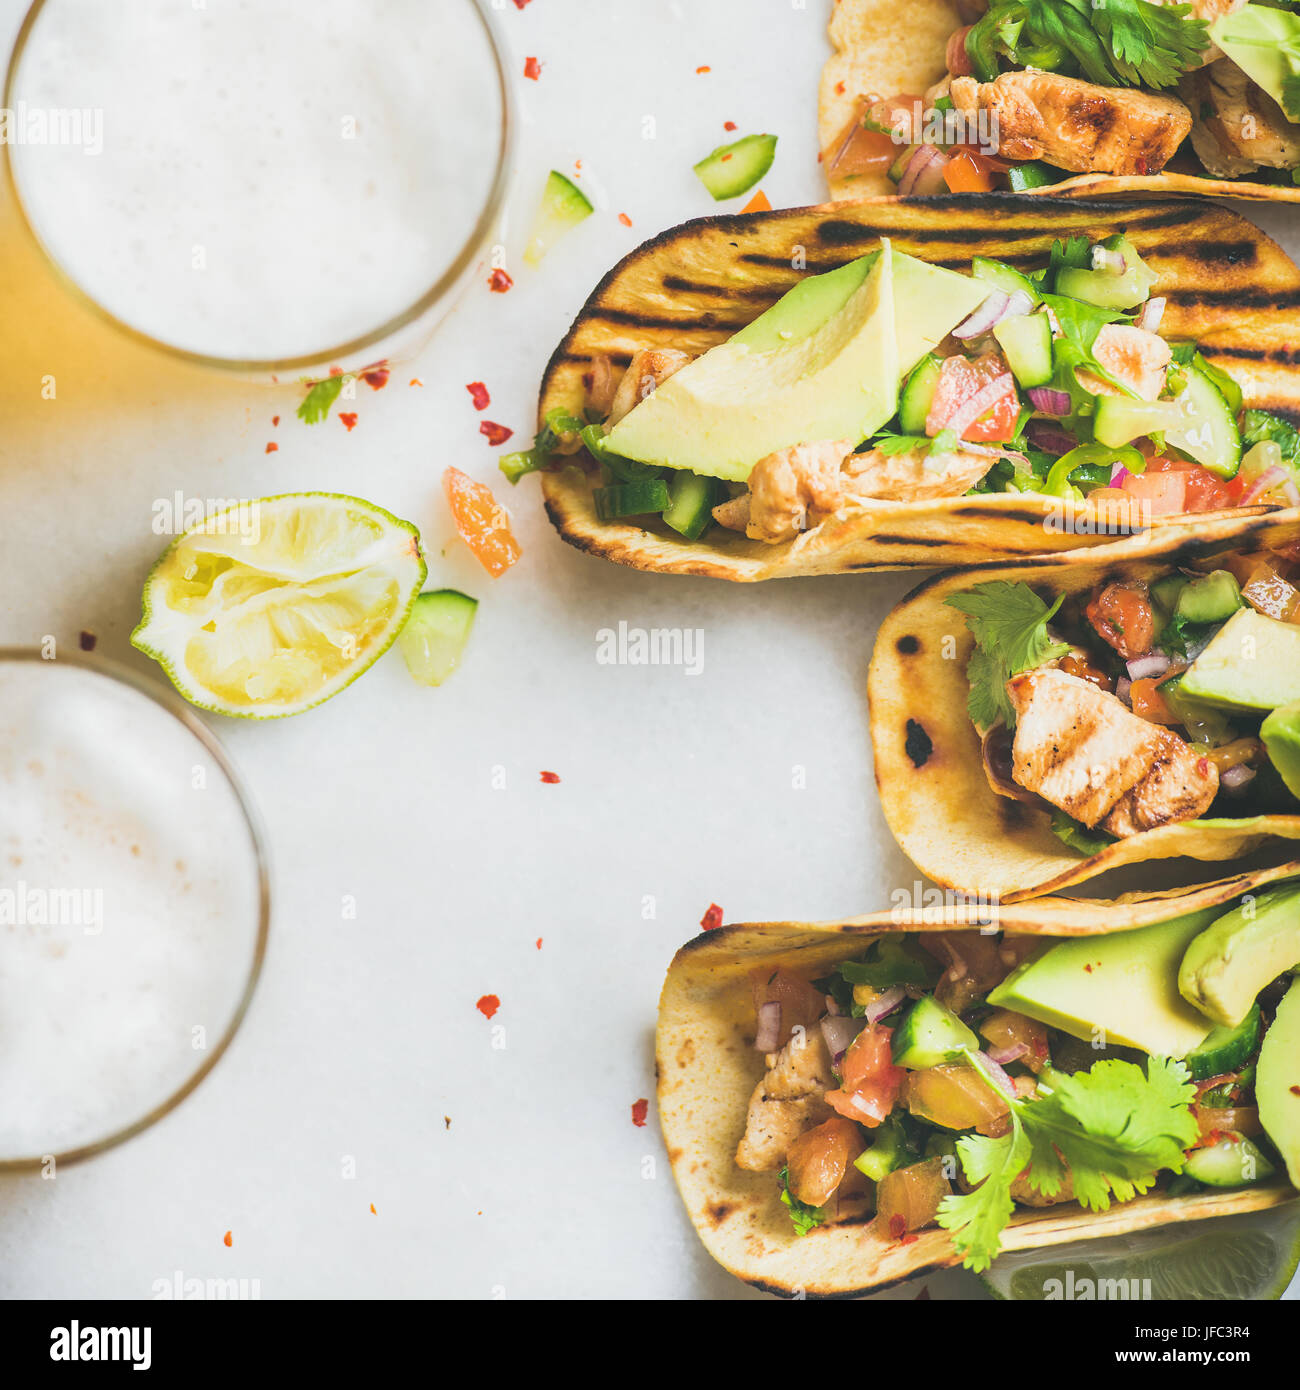 Healthy corn tortillas with chicken, vegetables, limes, square crop - Stock Image